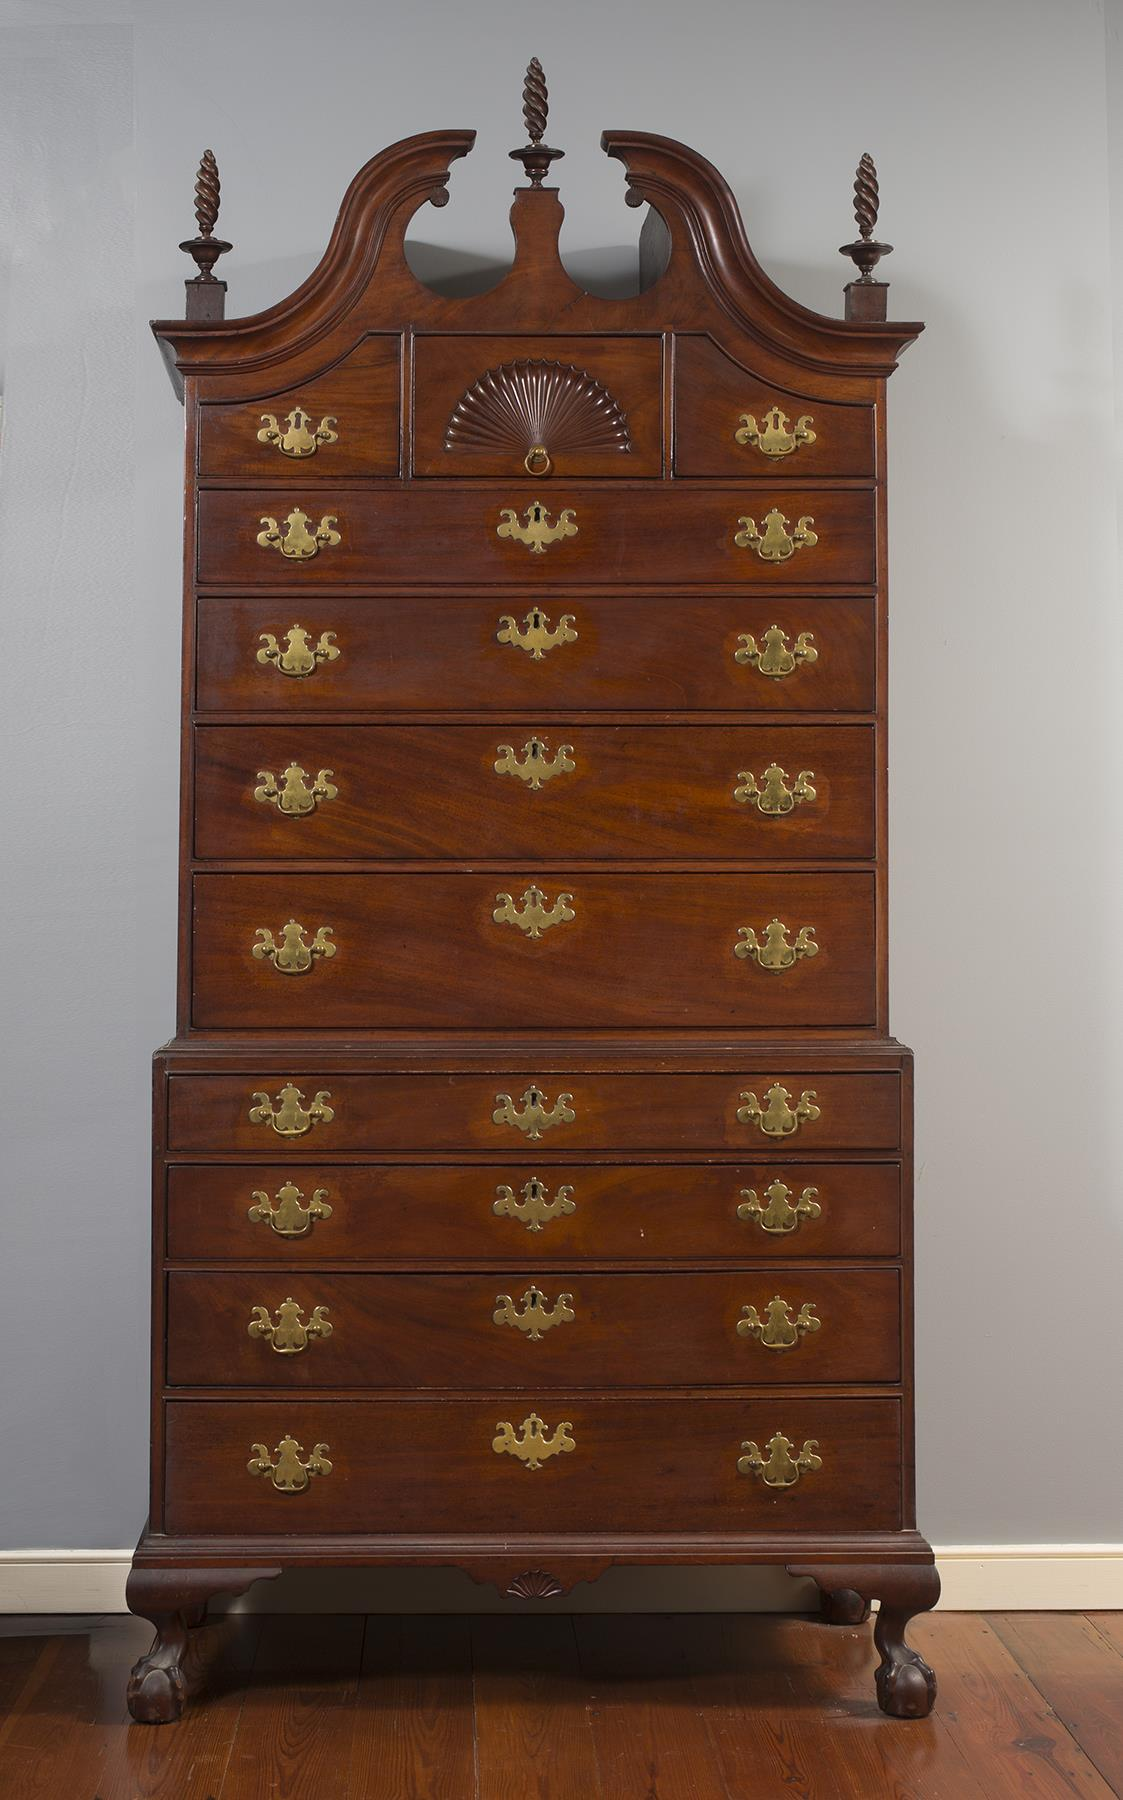 Chippendale Fan-Carved Chest on Chest